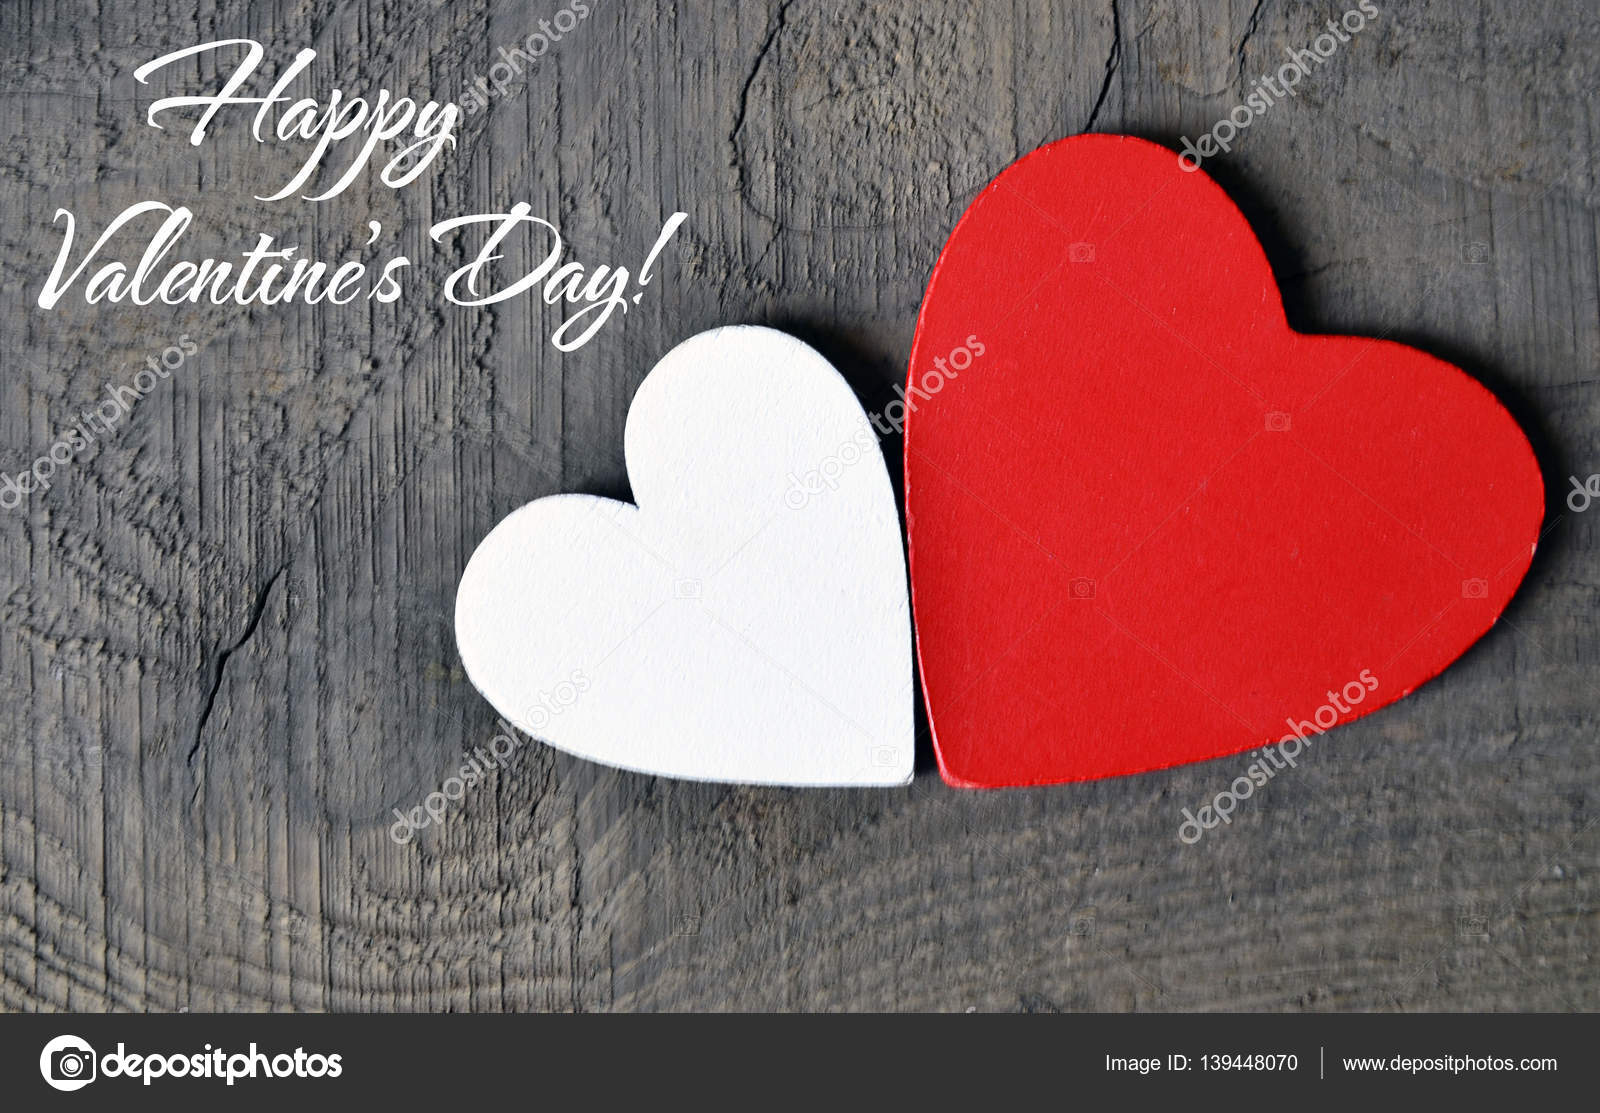 Happy Valentines Day Background Decorative Red And White Wooden Hearts On A Grey Rustic